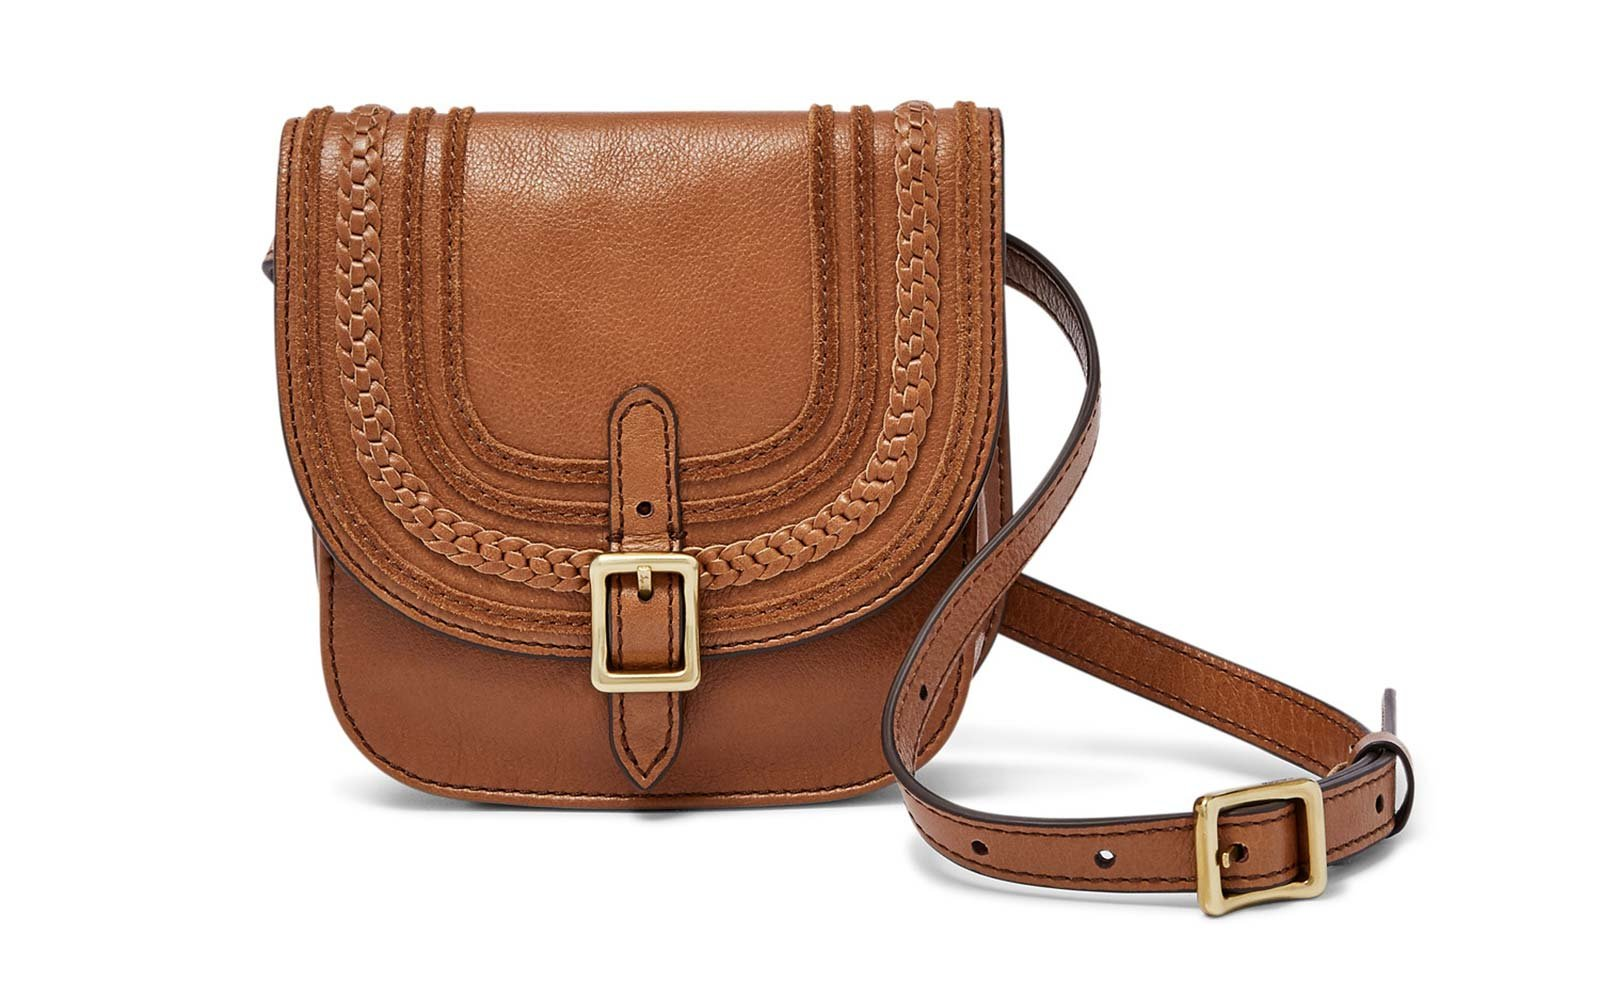 Fossil fanny pack